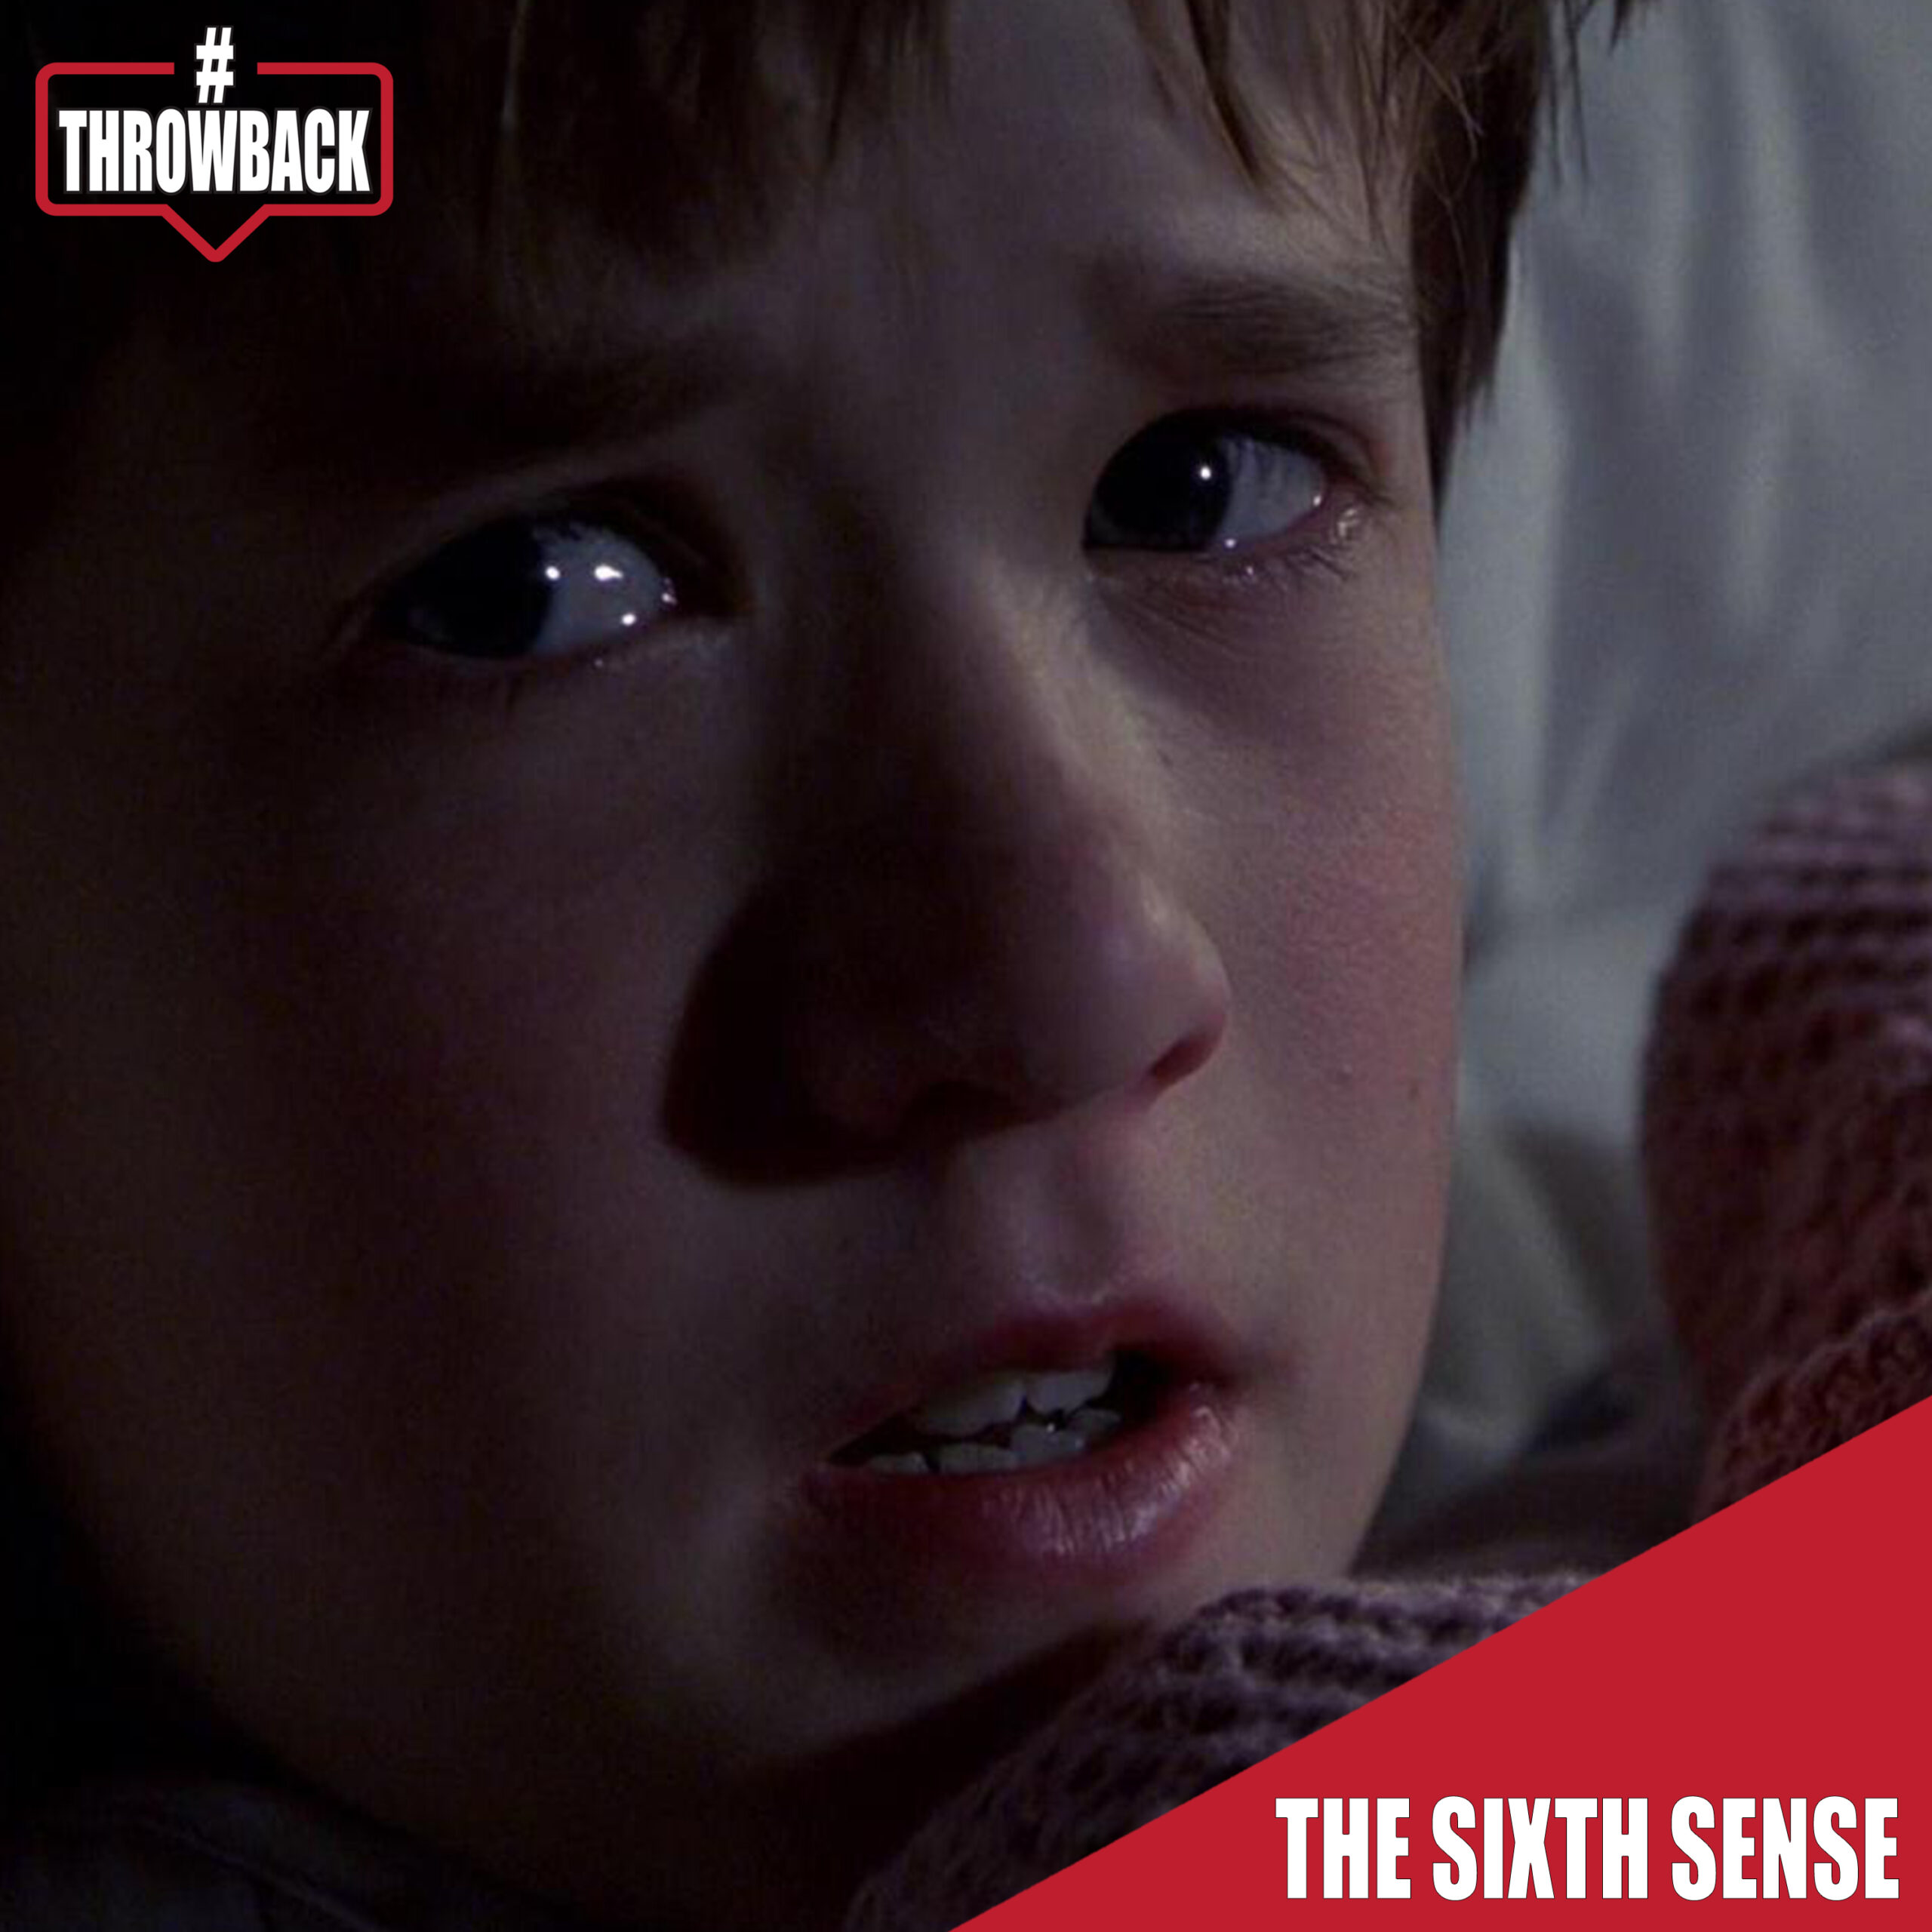 Throwback #44 – The Sixth Sense